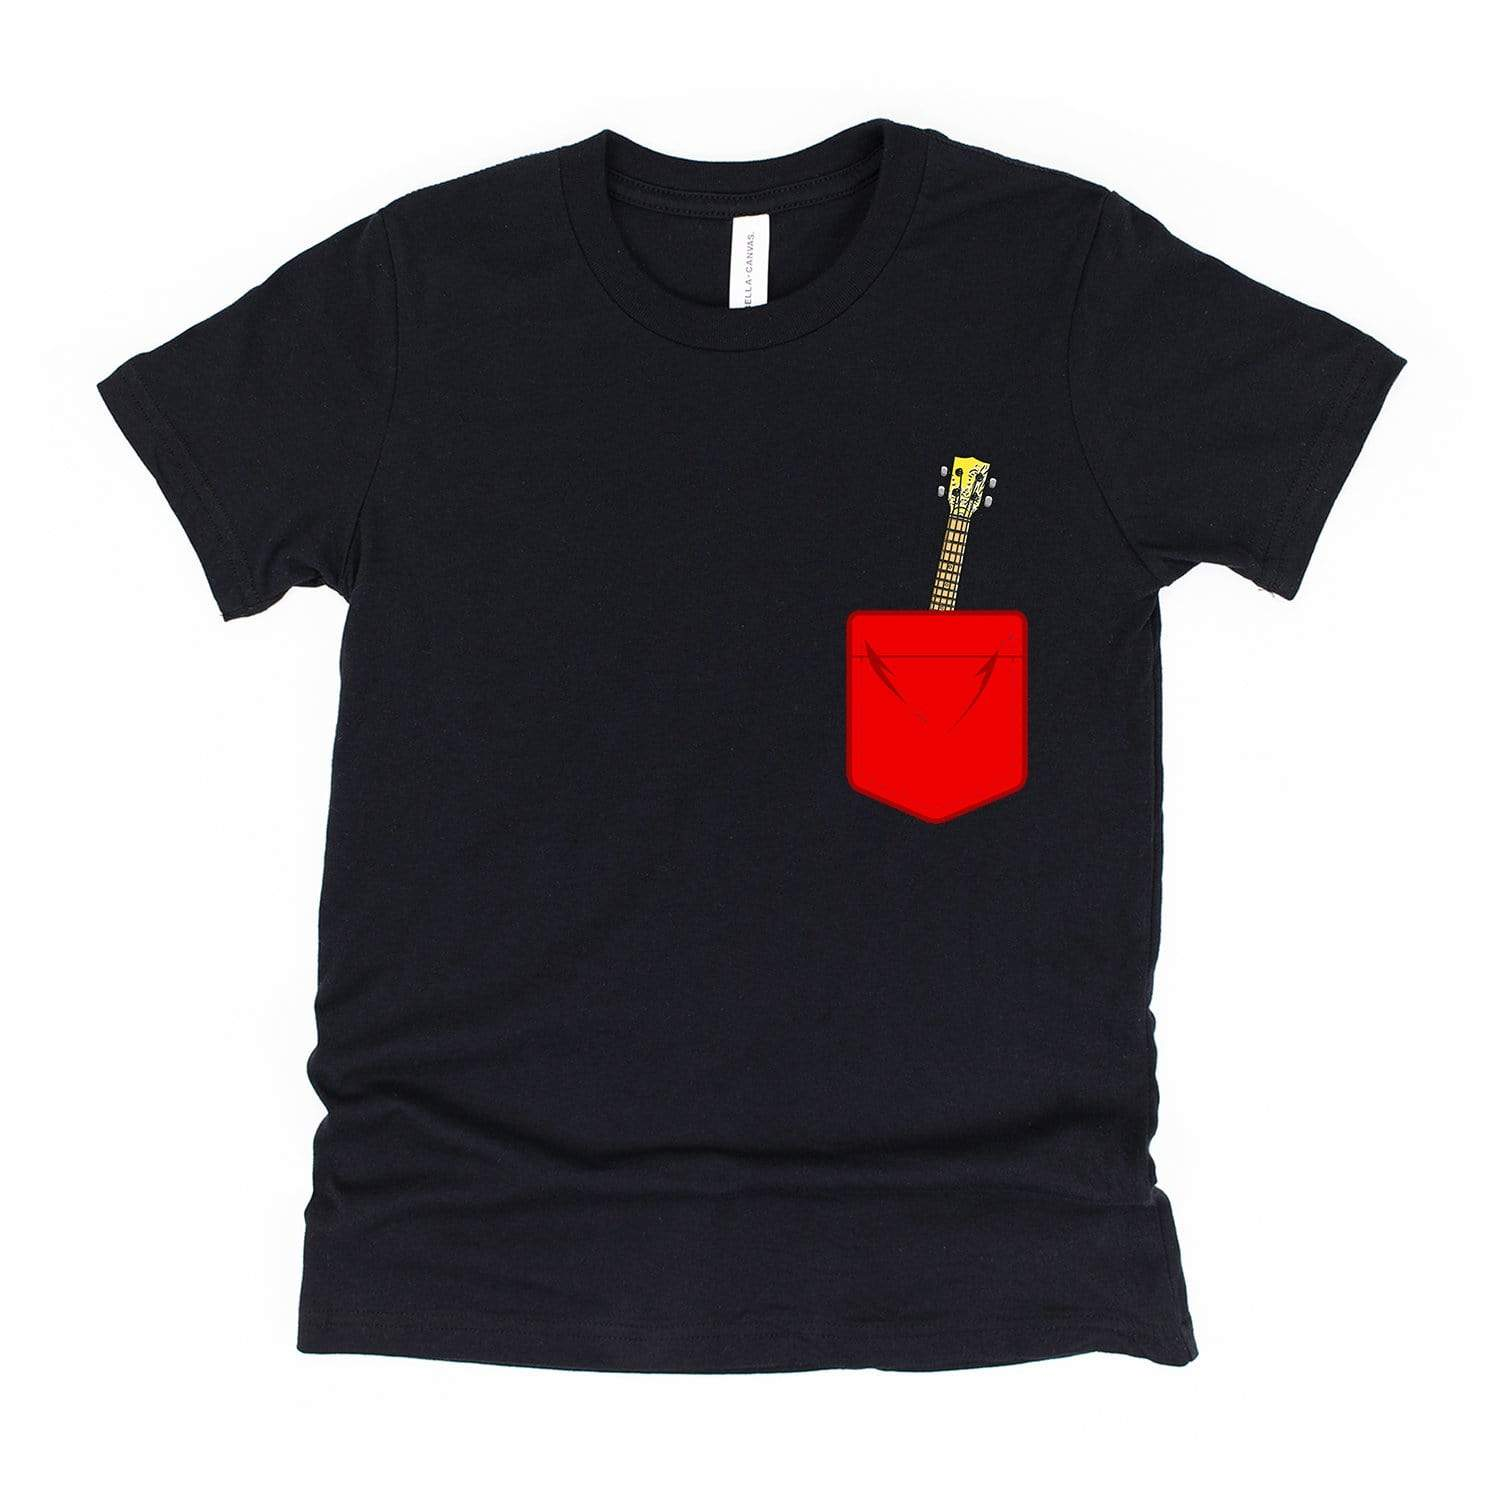 www.UkuleleTees.com Shirts Kids Red Mock Pocket Ukulele Youth Unisex T-Shirt